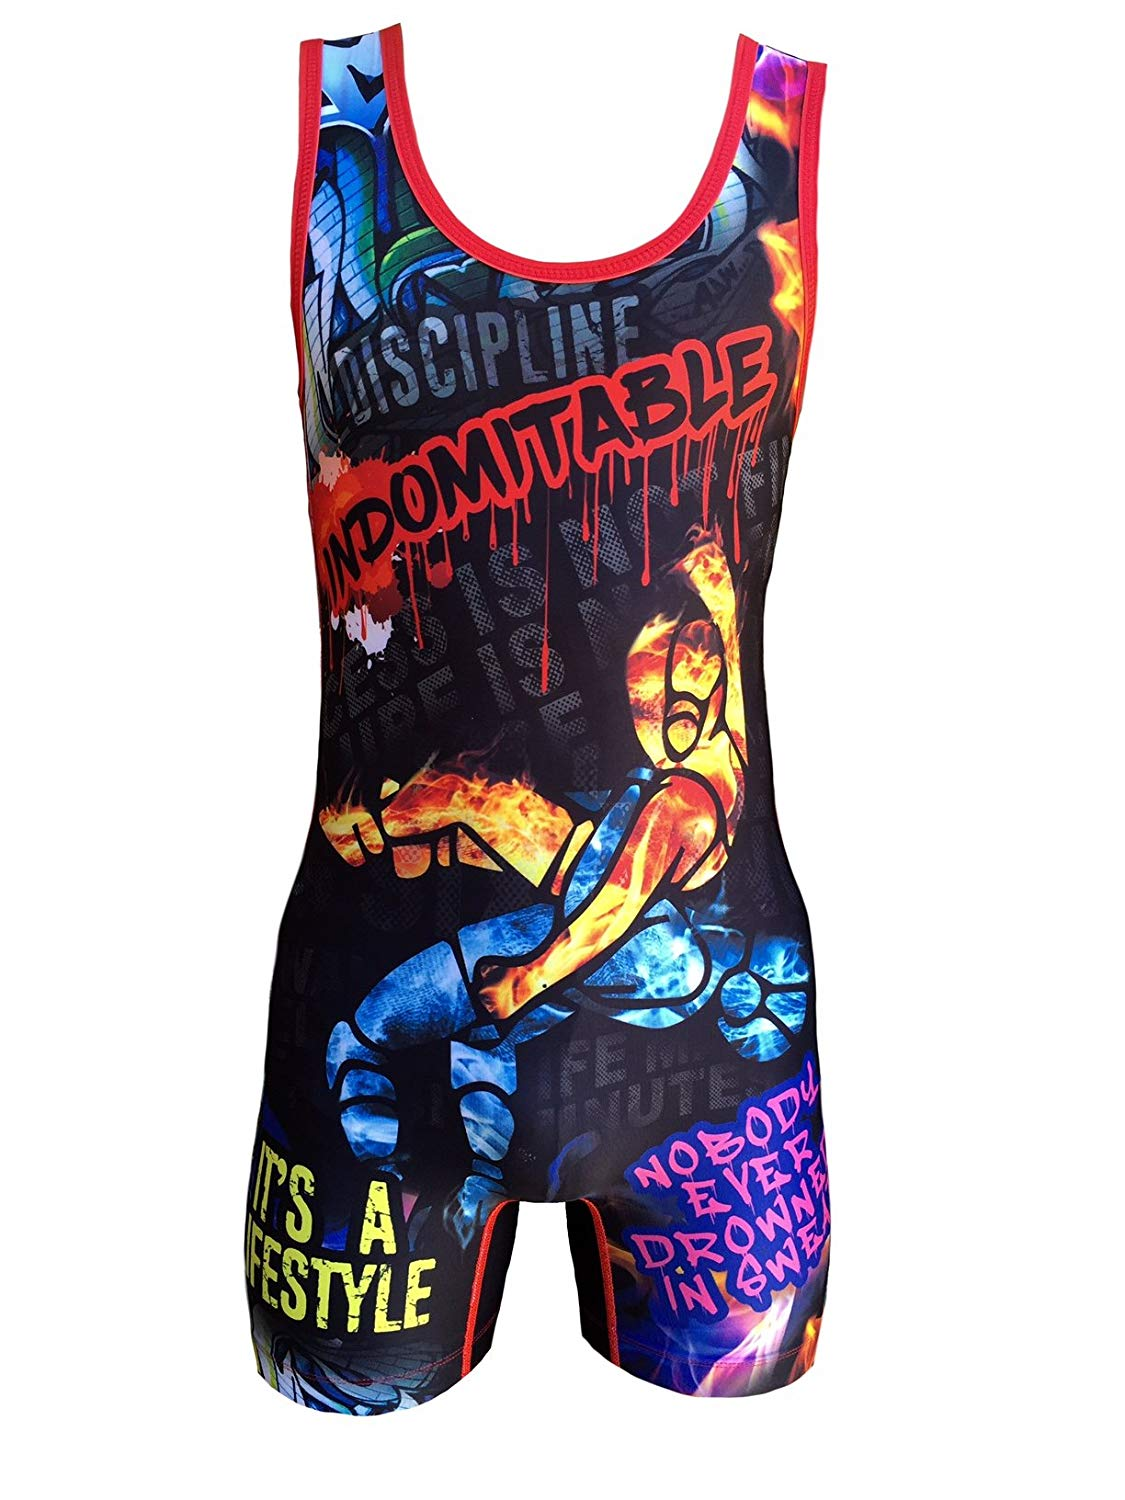 TRI-TITANS Level Up 9000 Wrestling Singlet Mens and Youth sizes